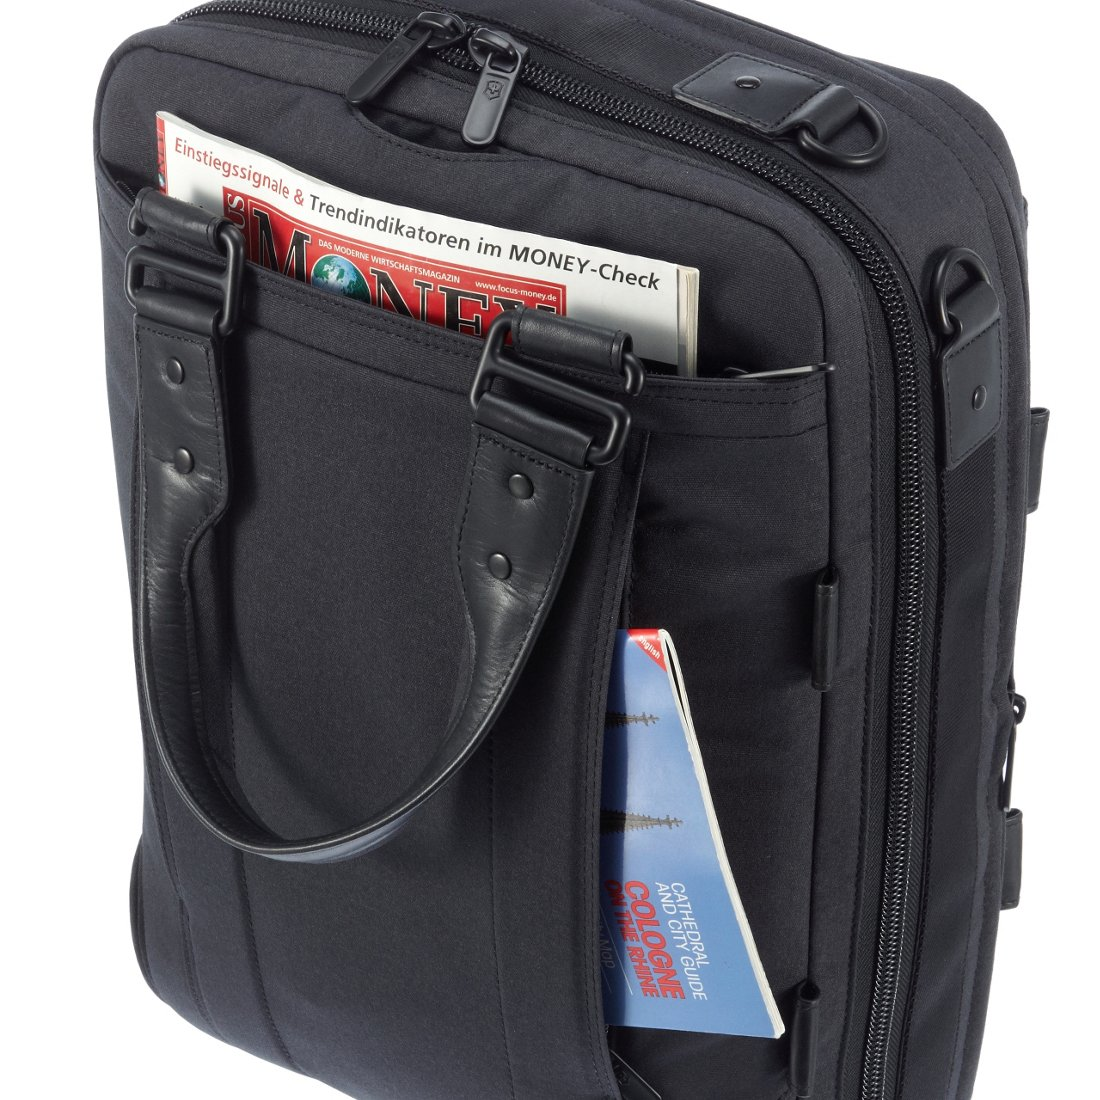 e4d4cd23d3464 Victorinox Architecture Urban Dufour 3-Wege Tasche mit Laptopfach 43 cm -  grey. Previous